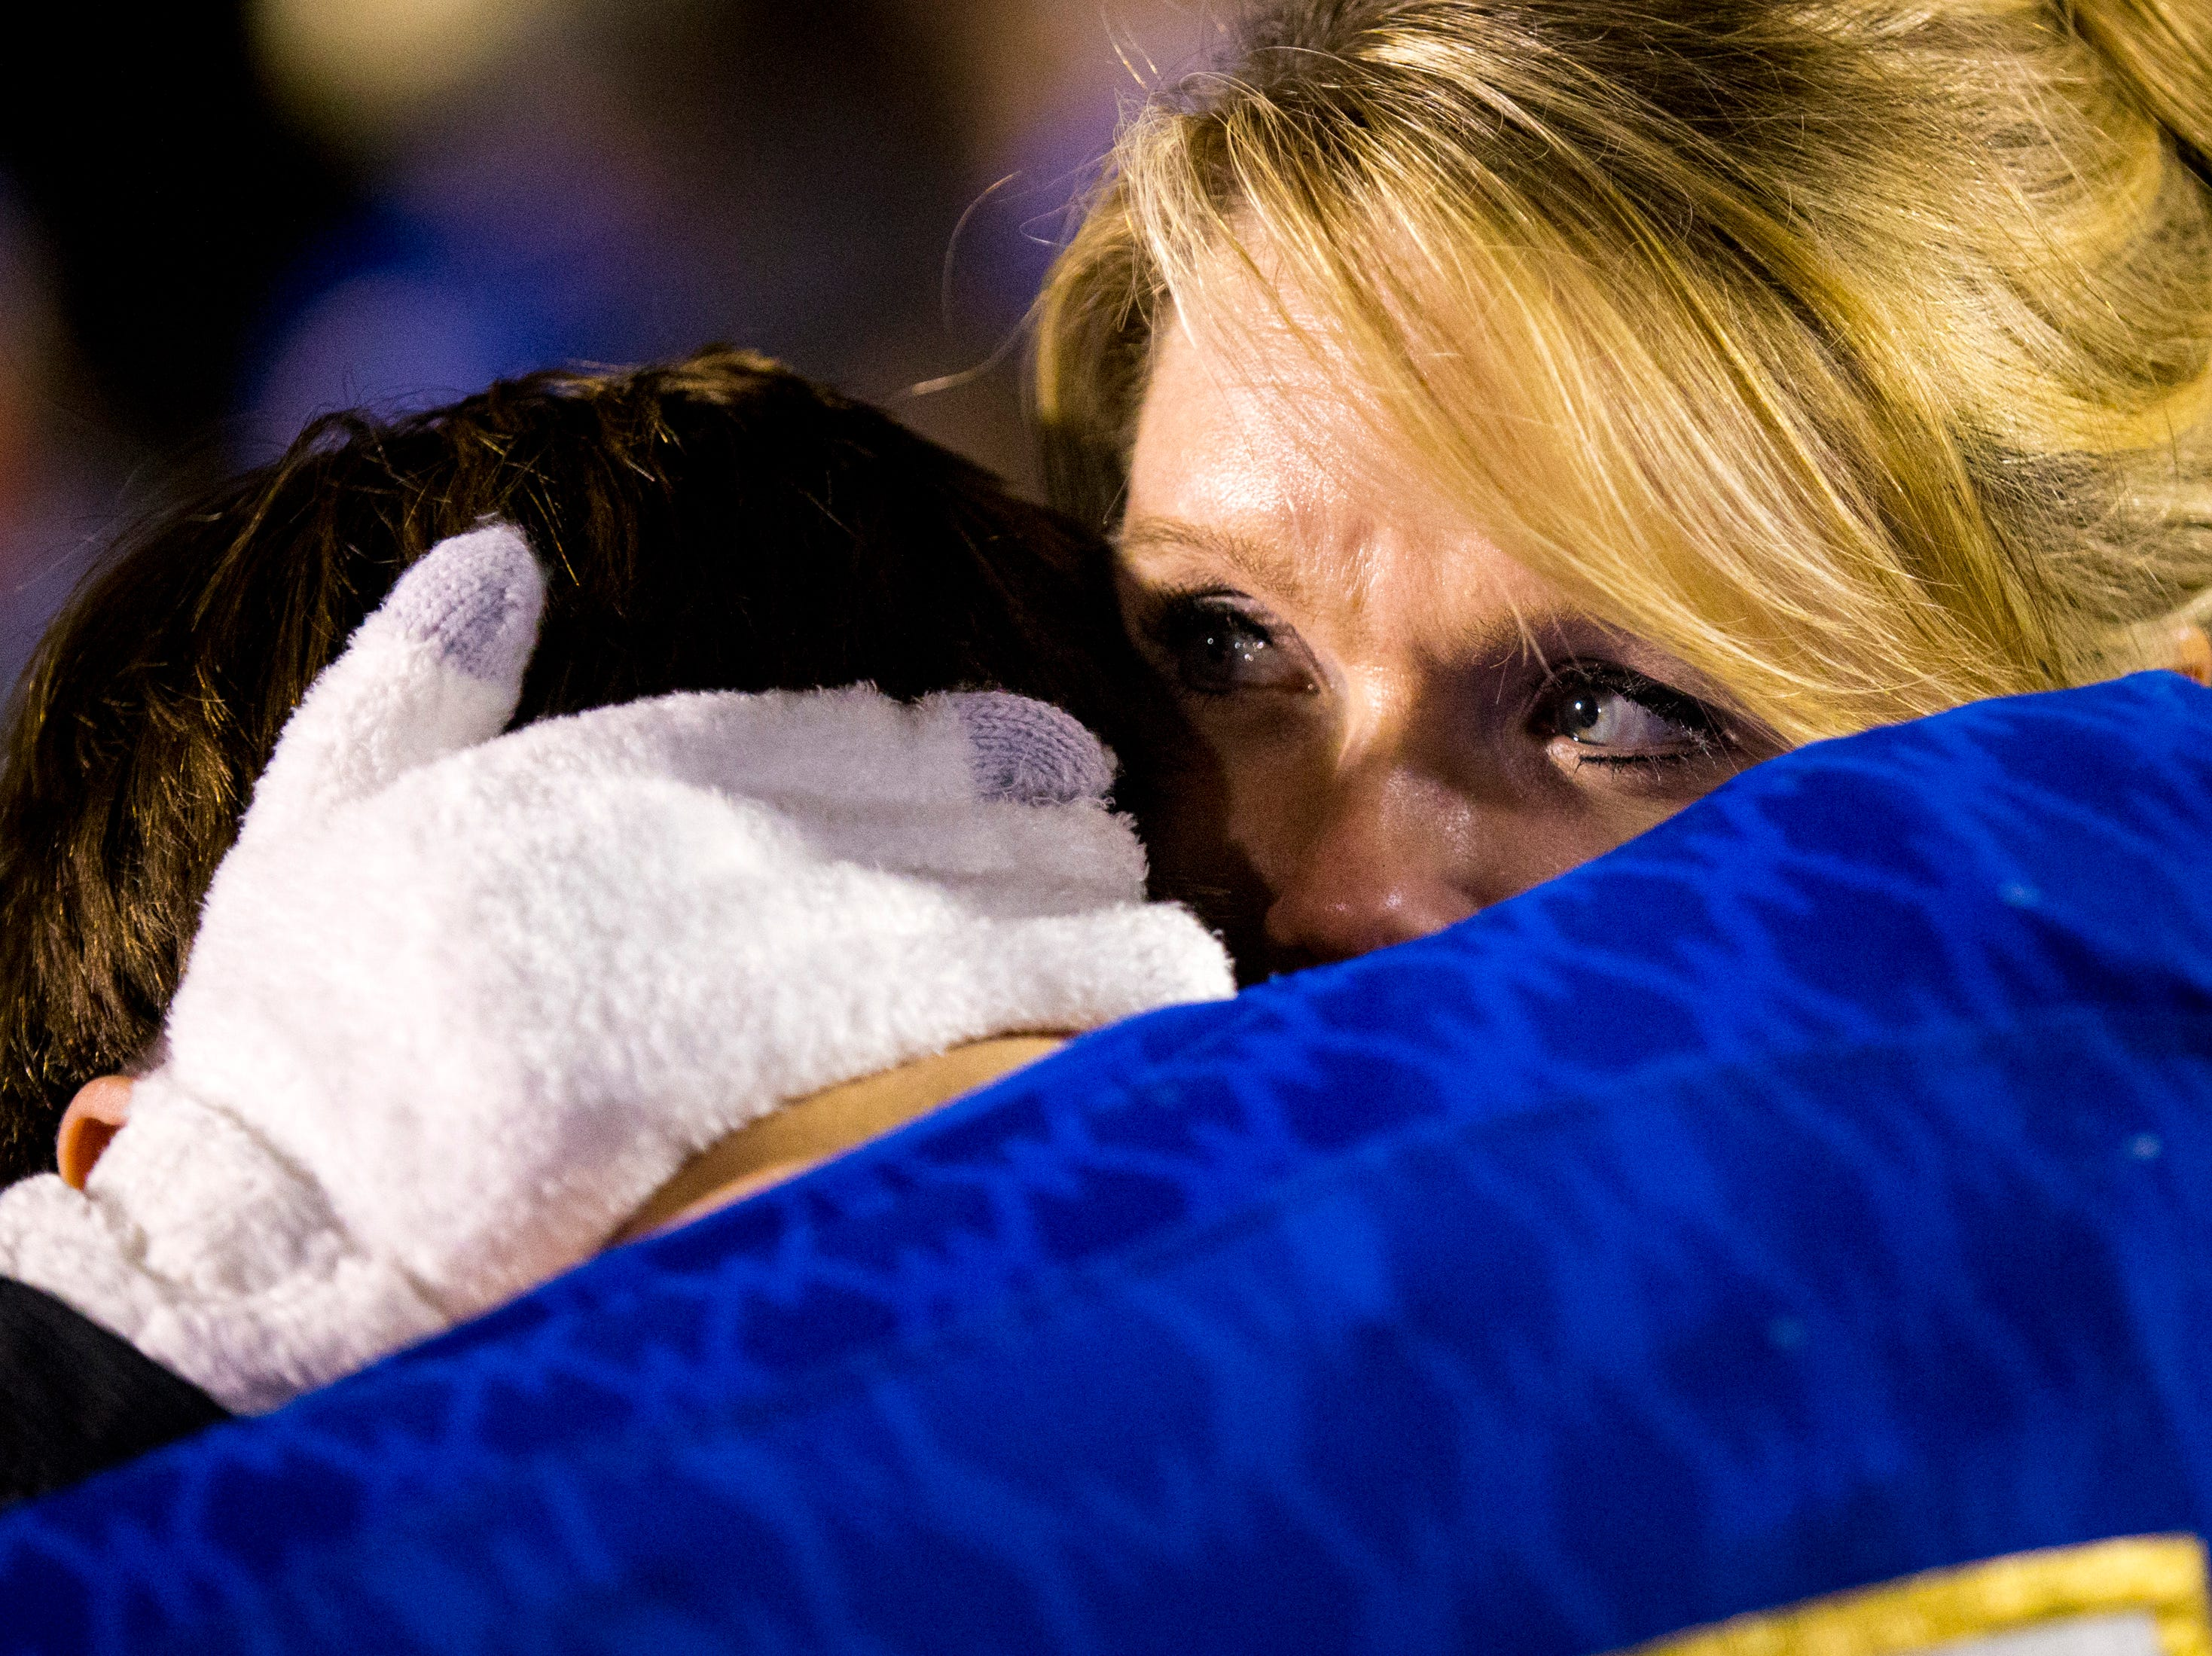 Andrea Hassenpflug comforts her son, Brentwood's Caleb Hassenpflug (15) after Brentwood's game against Ravenwood at Brentwood High School in Brentwood on Friday, Nov. 16, 2018.